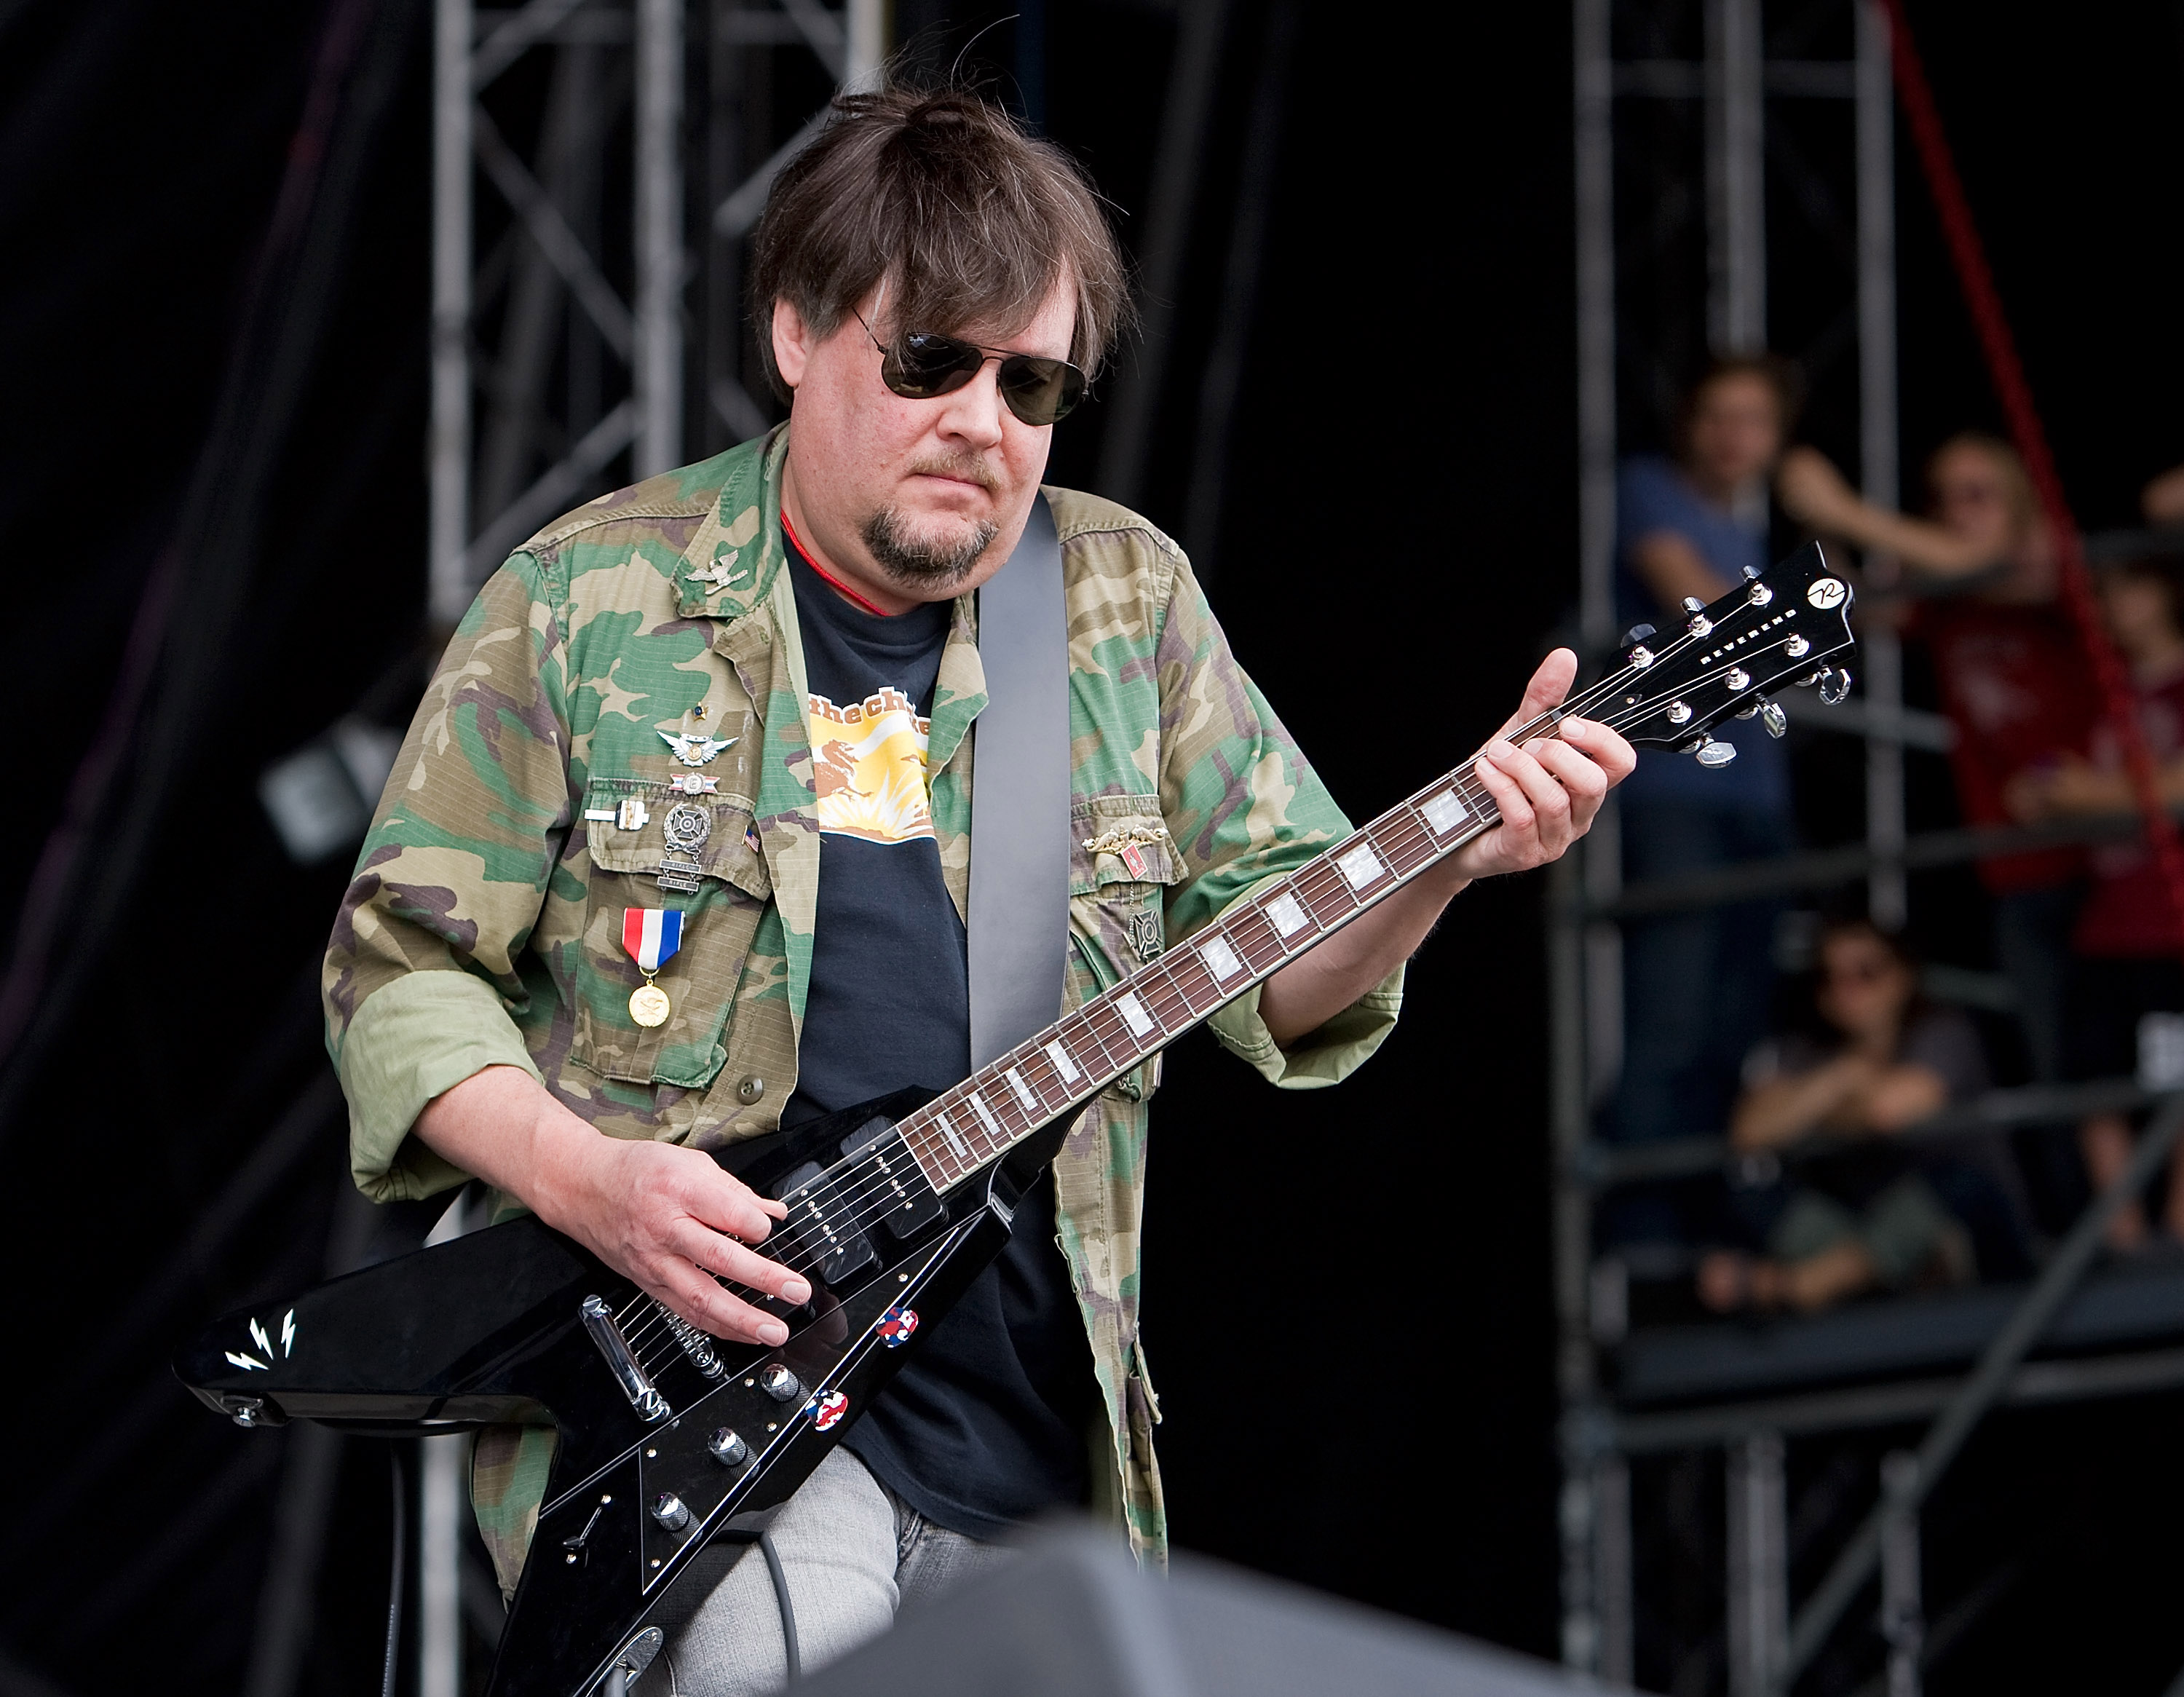 Ron Asheton of Iggy and the Stooges performs during the 2008 Virgin Mobile festival at the Pimlico Race Course on August 10,